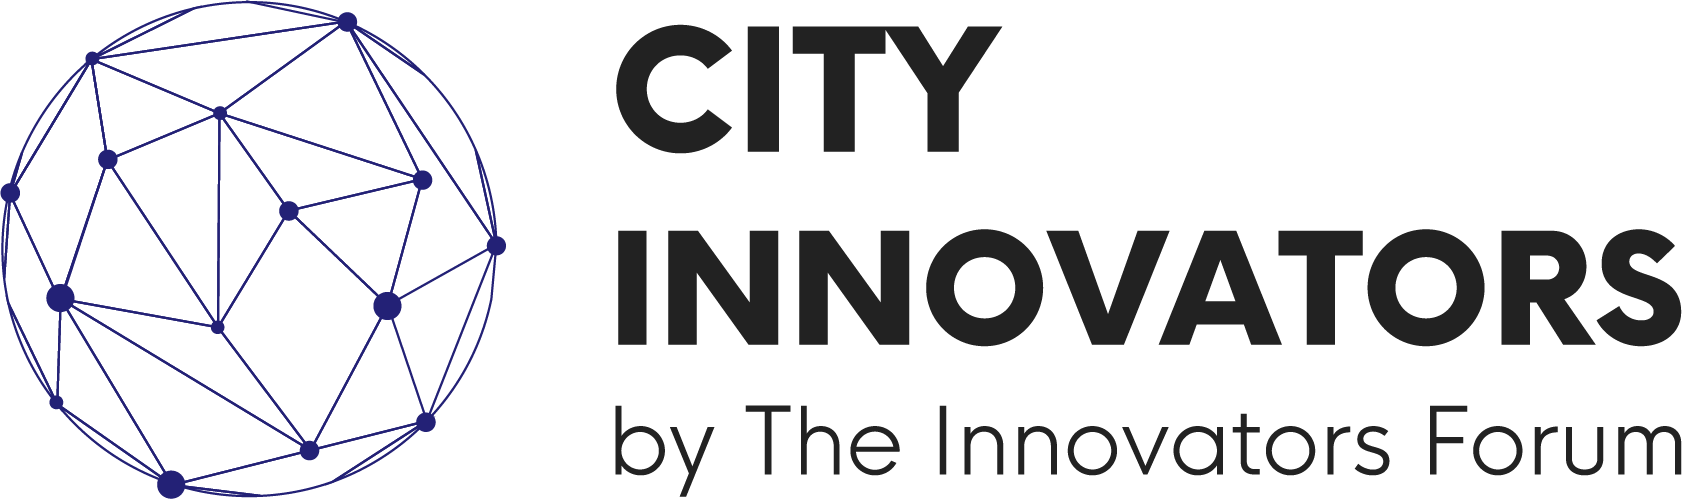 Harvard TECH City Innovators